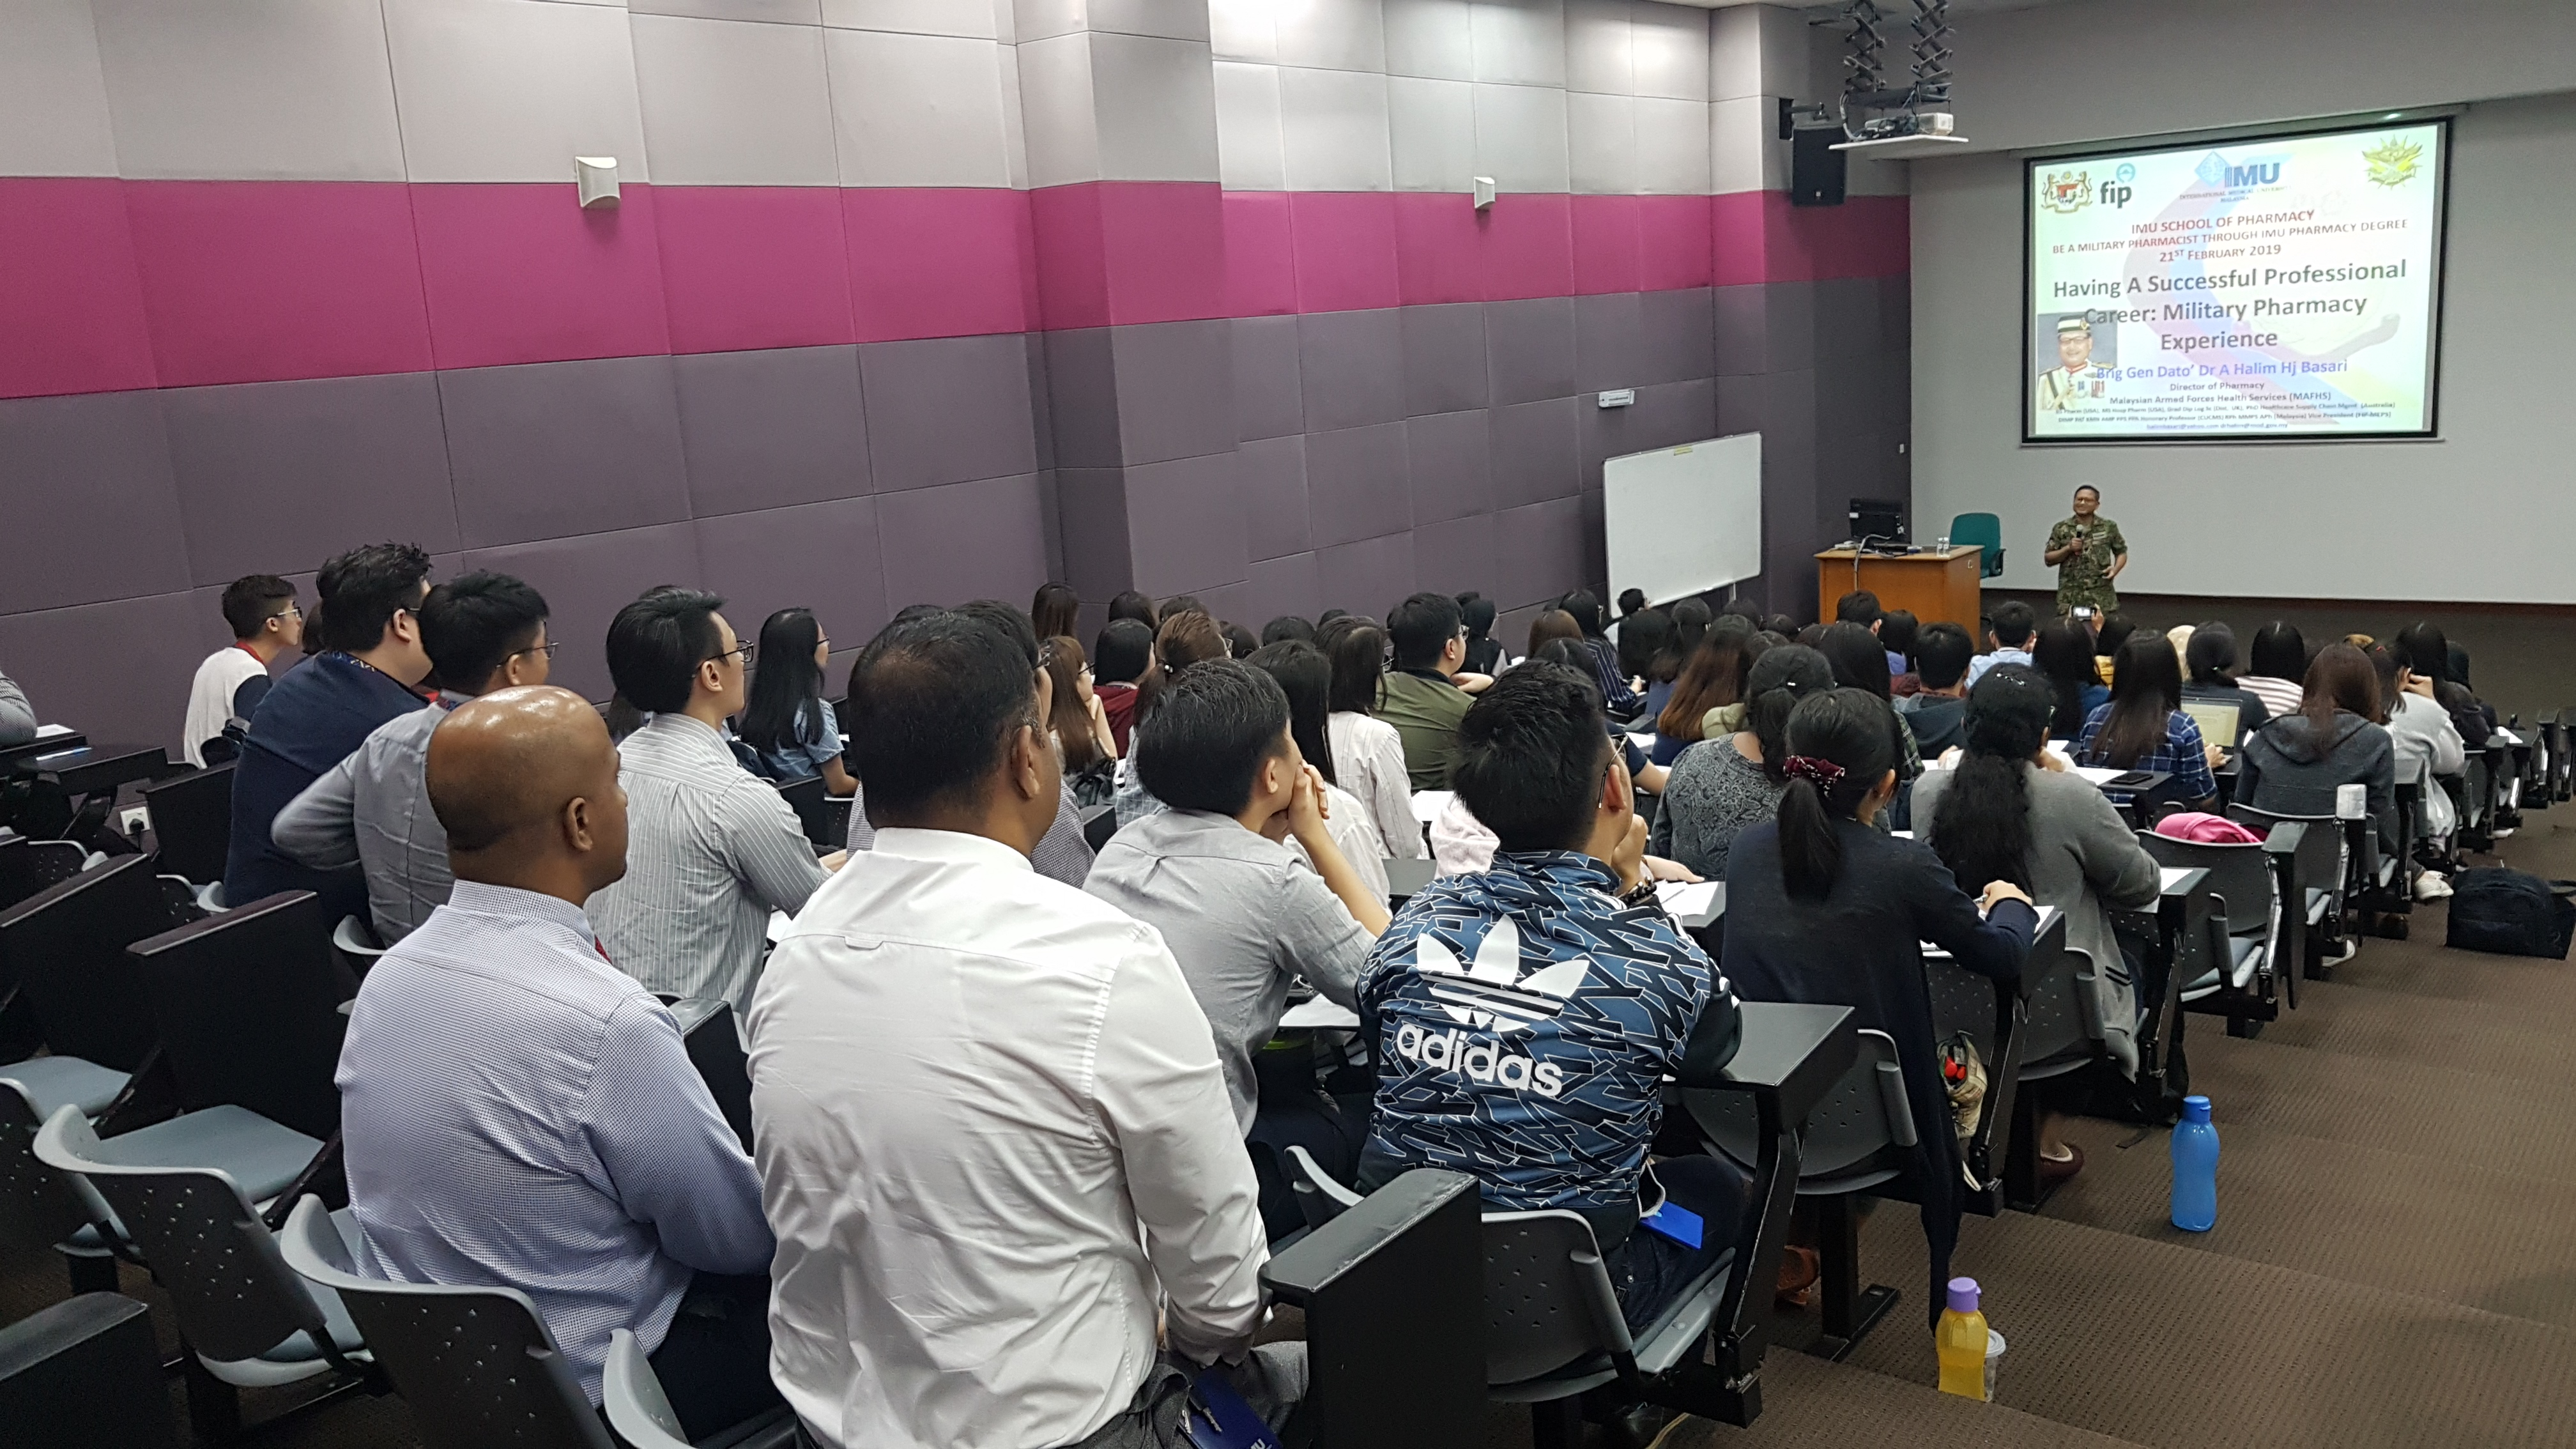 Sharing session at IMU on a career as a military pharmacist